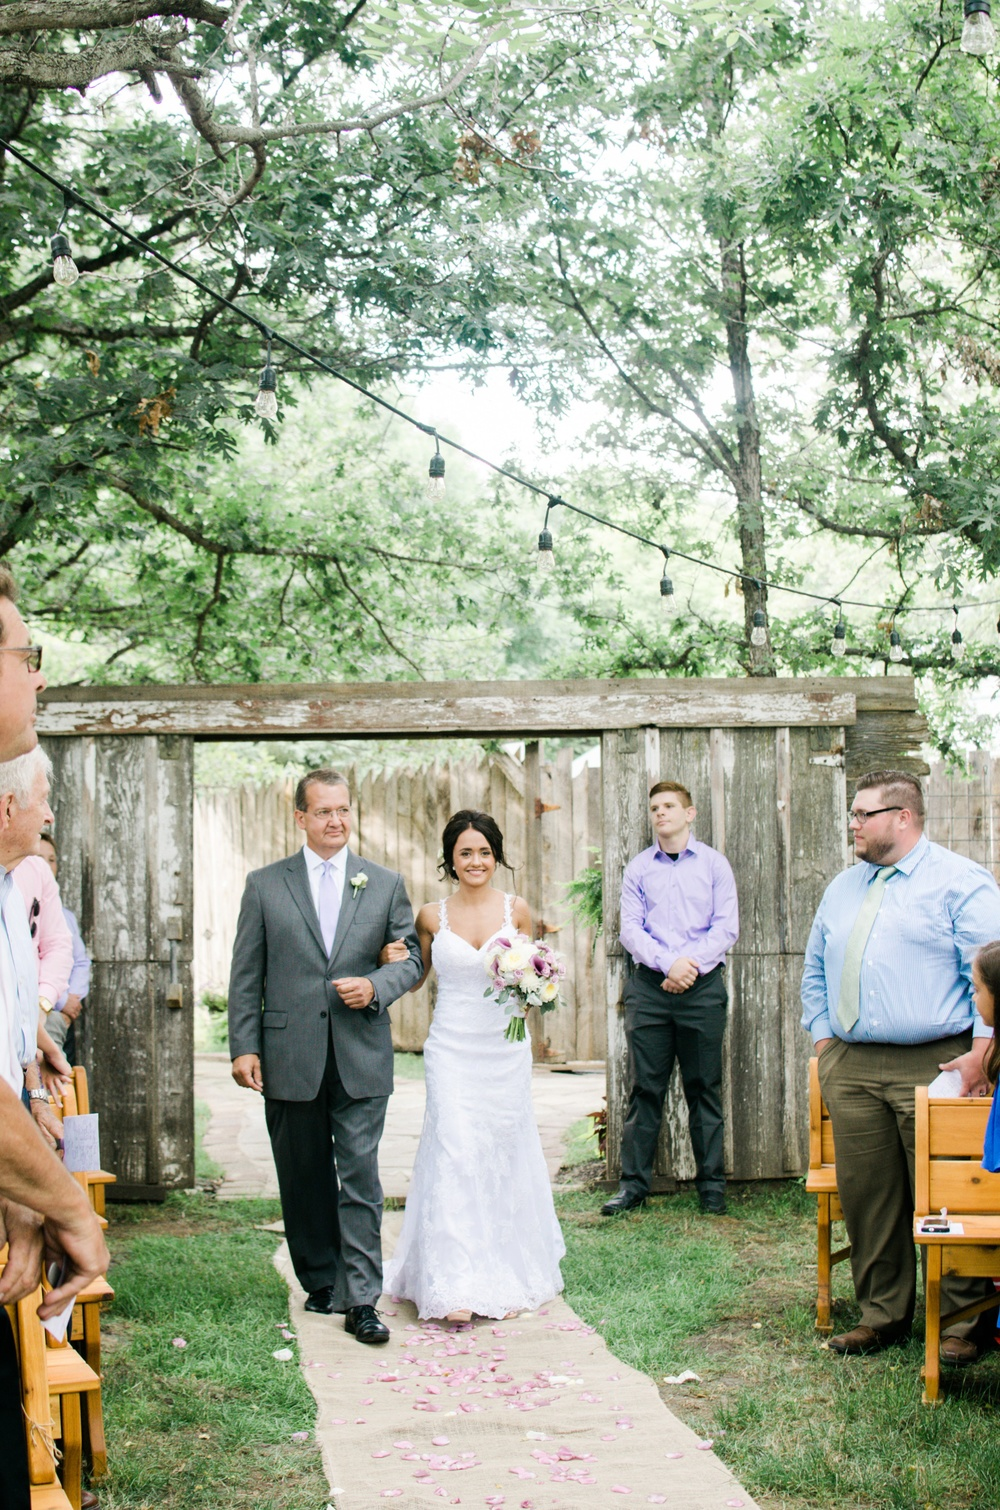 Barnes' Place Rustic Outdoor Wedding | Ali Leigh Photo Minneapolis Wedding Photographer_0132.jpg